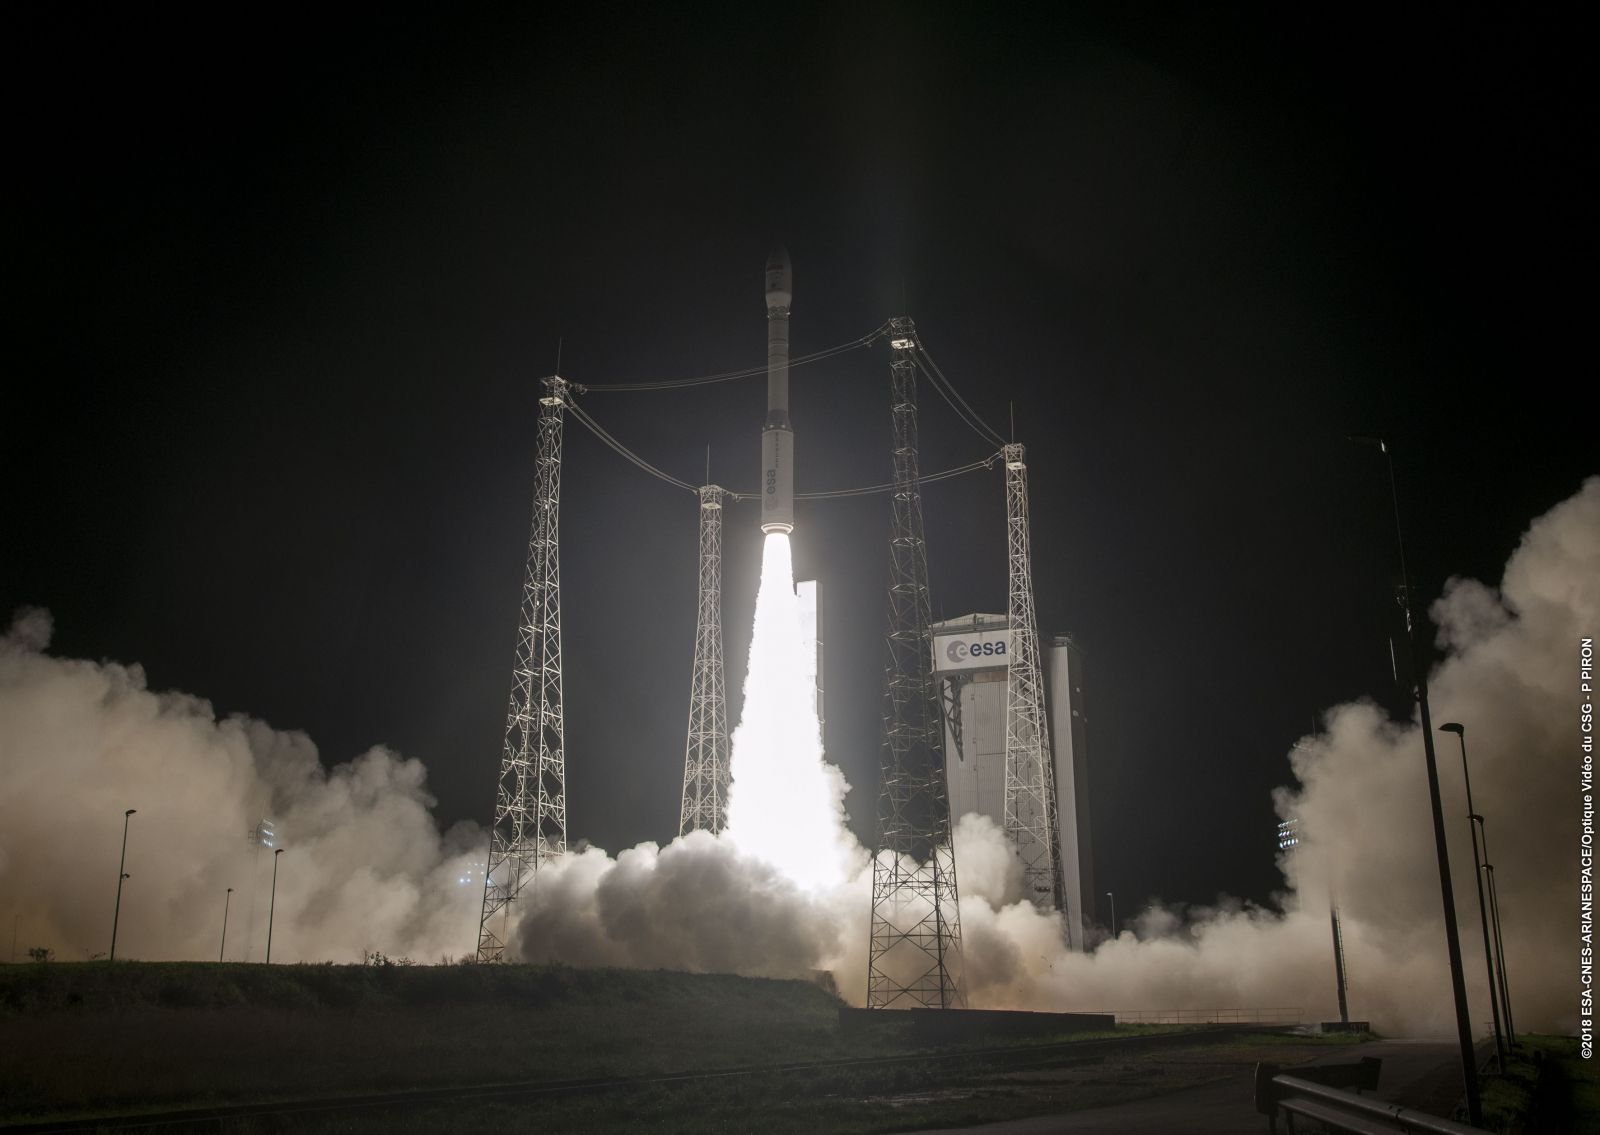 MOHAMMED IV-B is launched by Arianespace's Vega rocket. Photo Credit: Arianespace